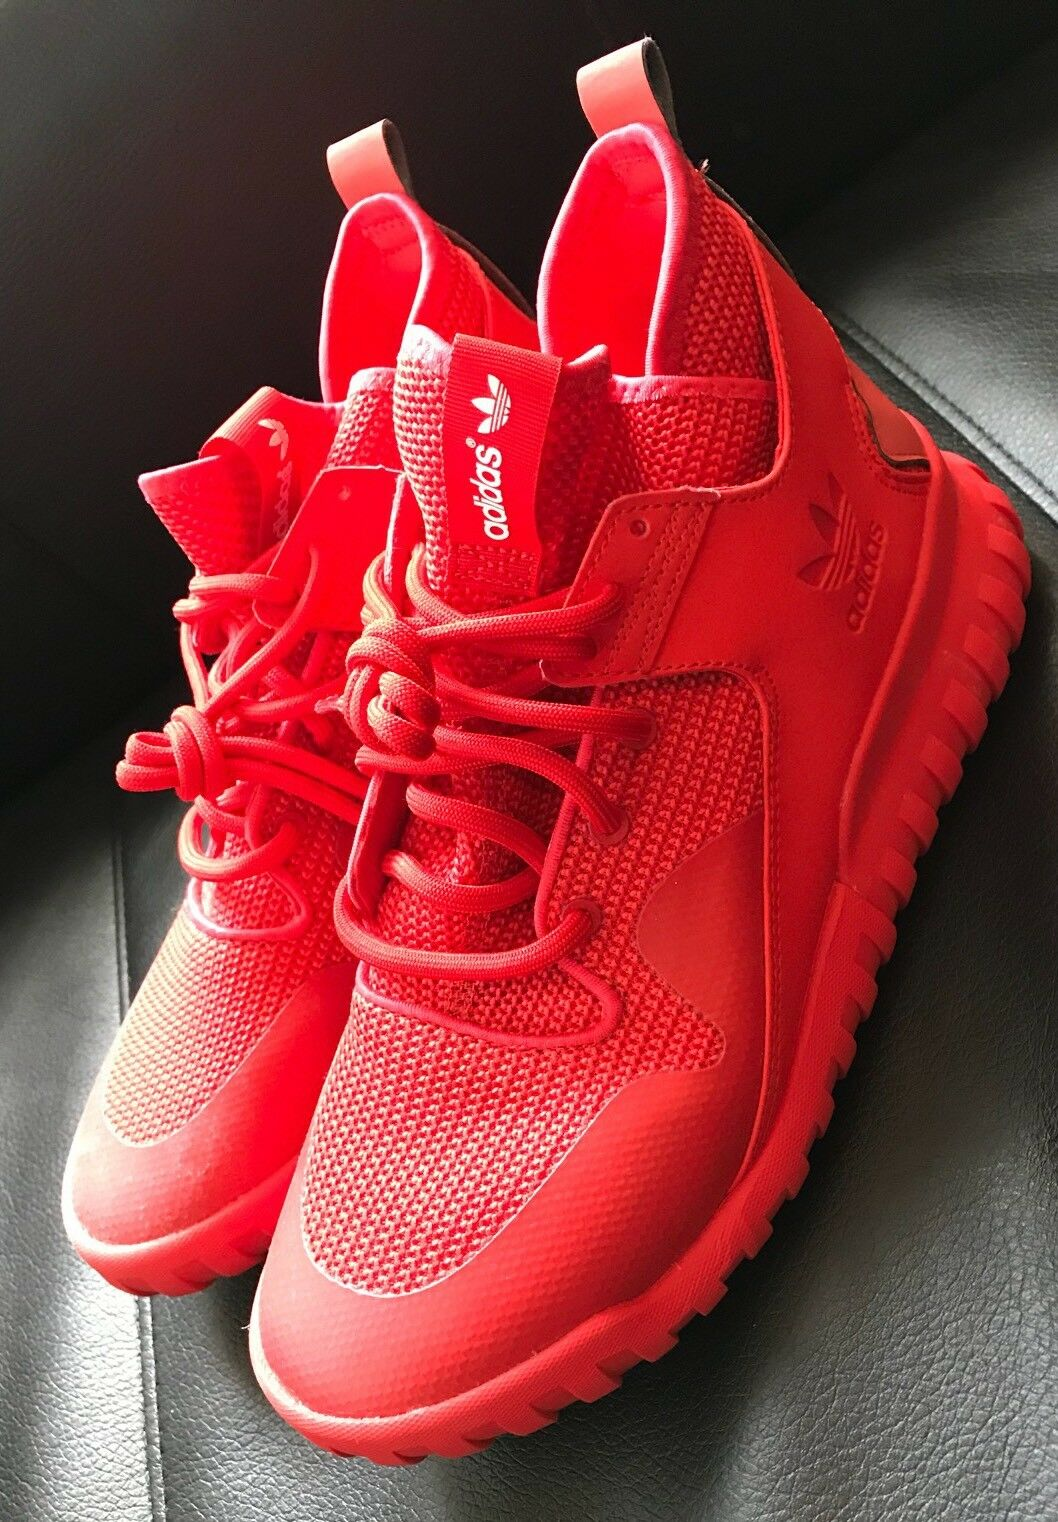 adidas Originals Tubular X Men's Red/Red AQ5452 RARE Size 9 SOLD OUT Instantly!!